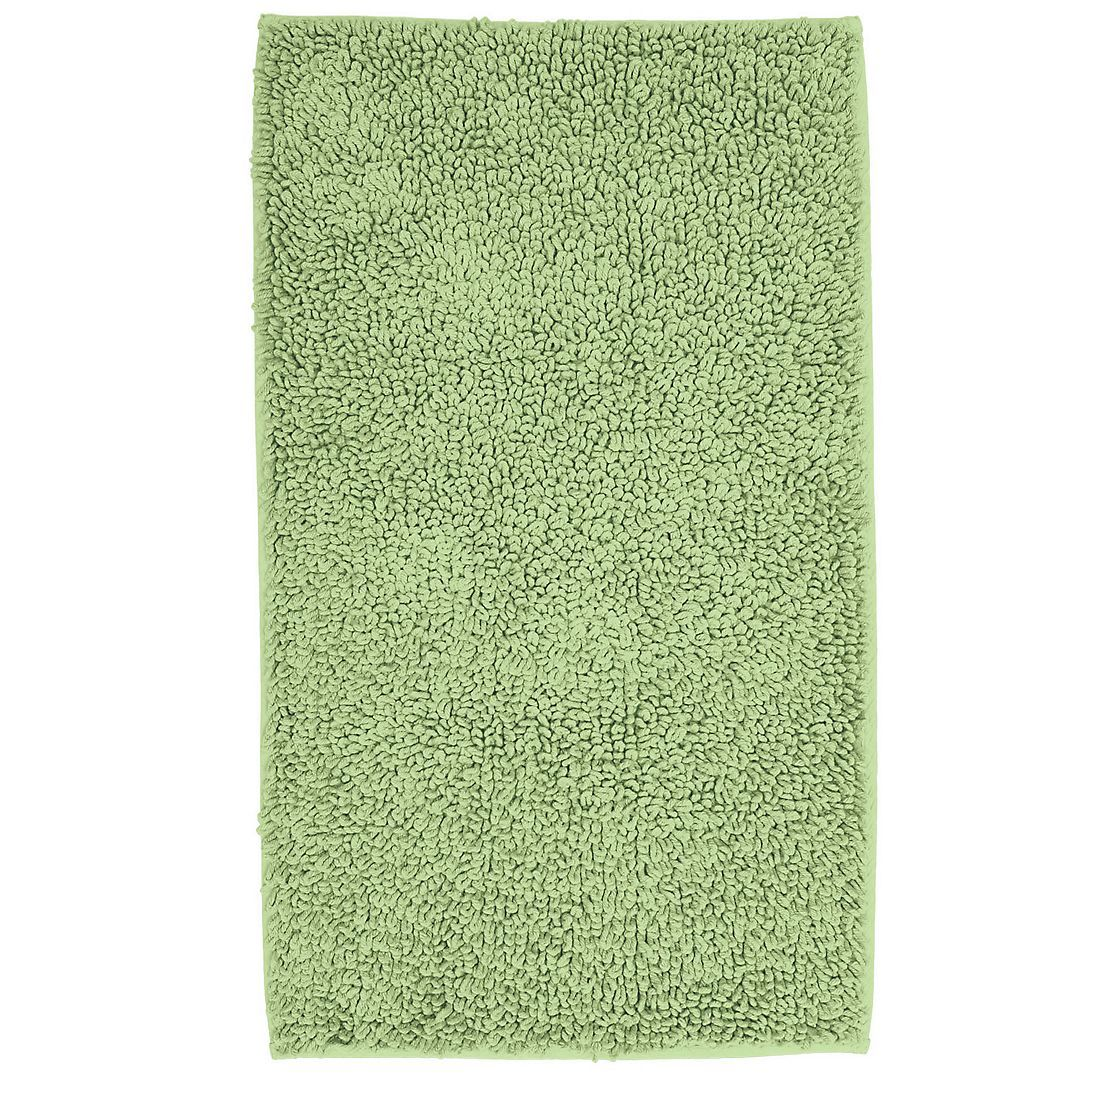 Amazing Company Cotton™ Chunky Bath Rug | The Company Store Nice Design